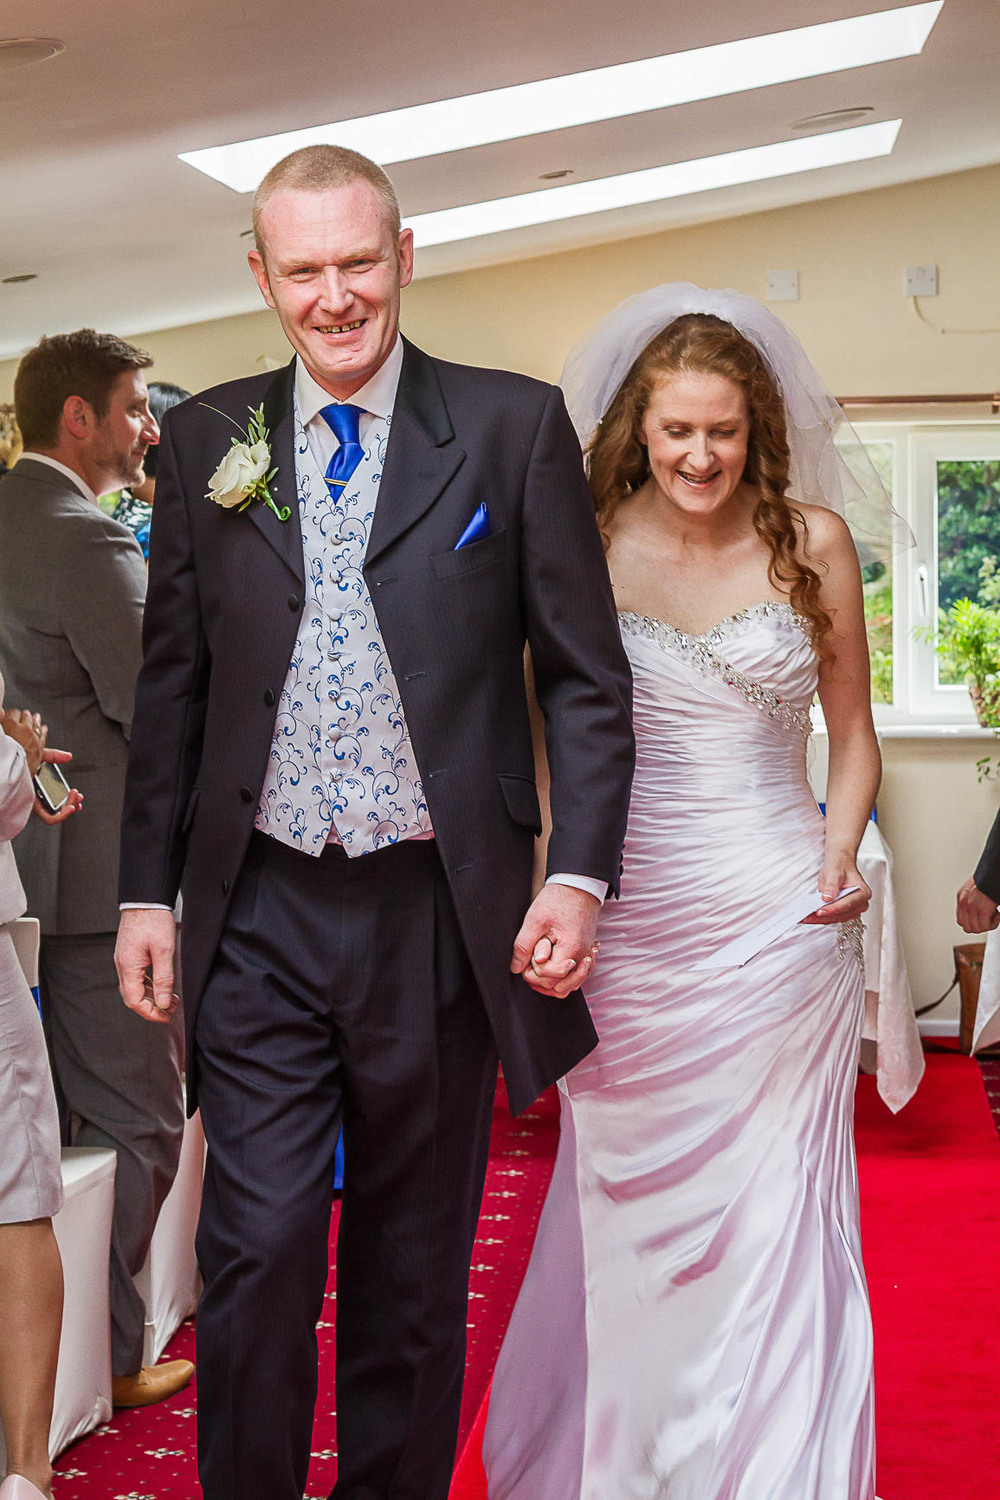 Kelly & Tony_Wedding_Windy Harbour Farm_July2015_SJW Photography_Warrington-205.jpg